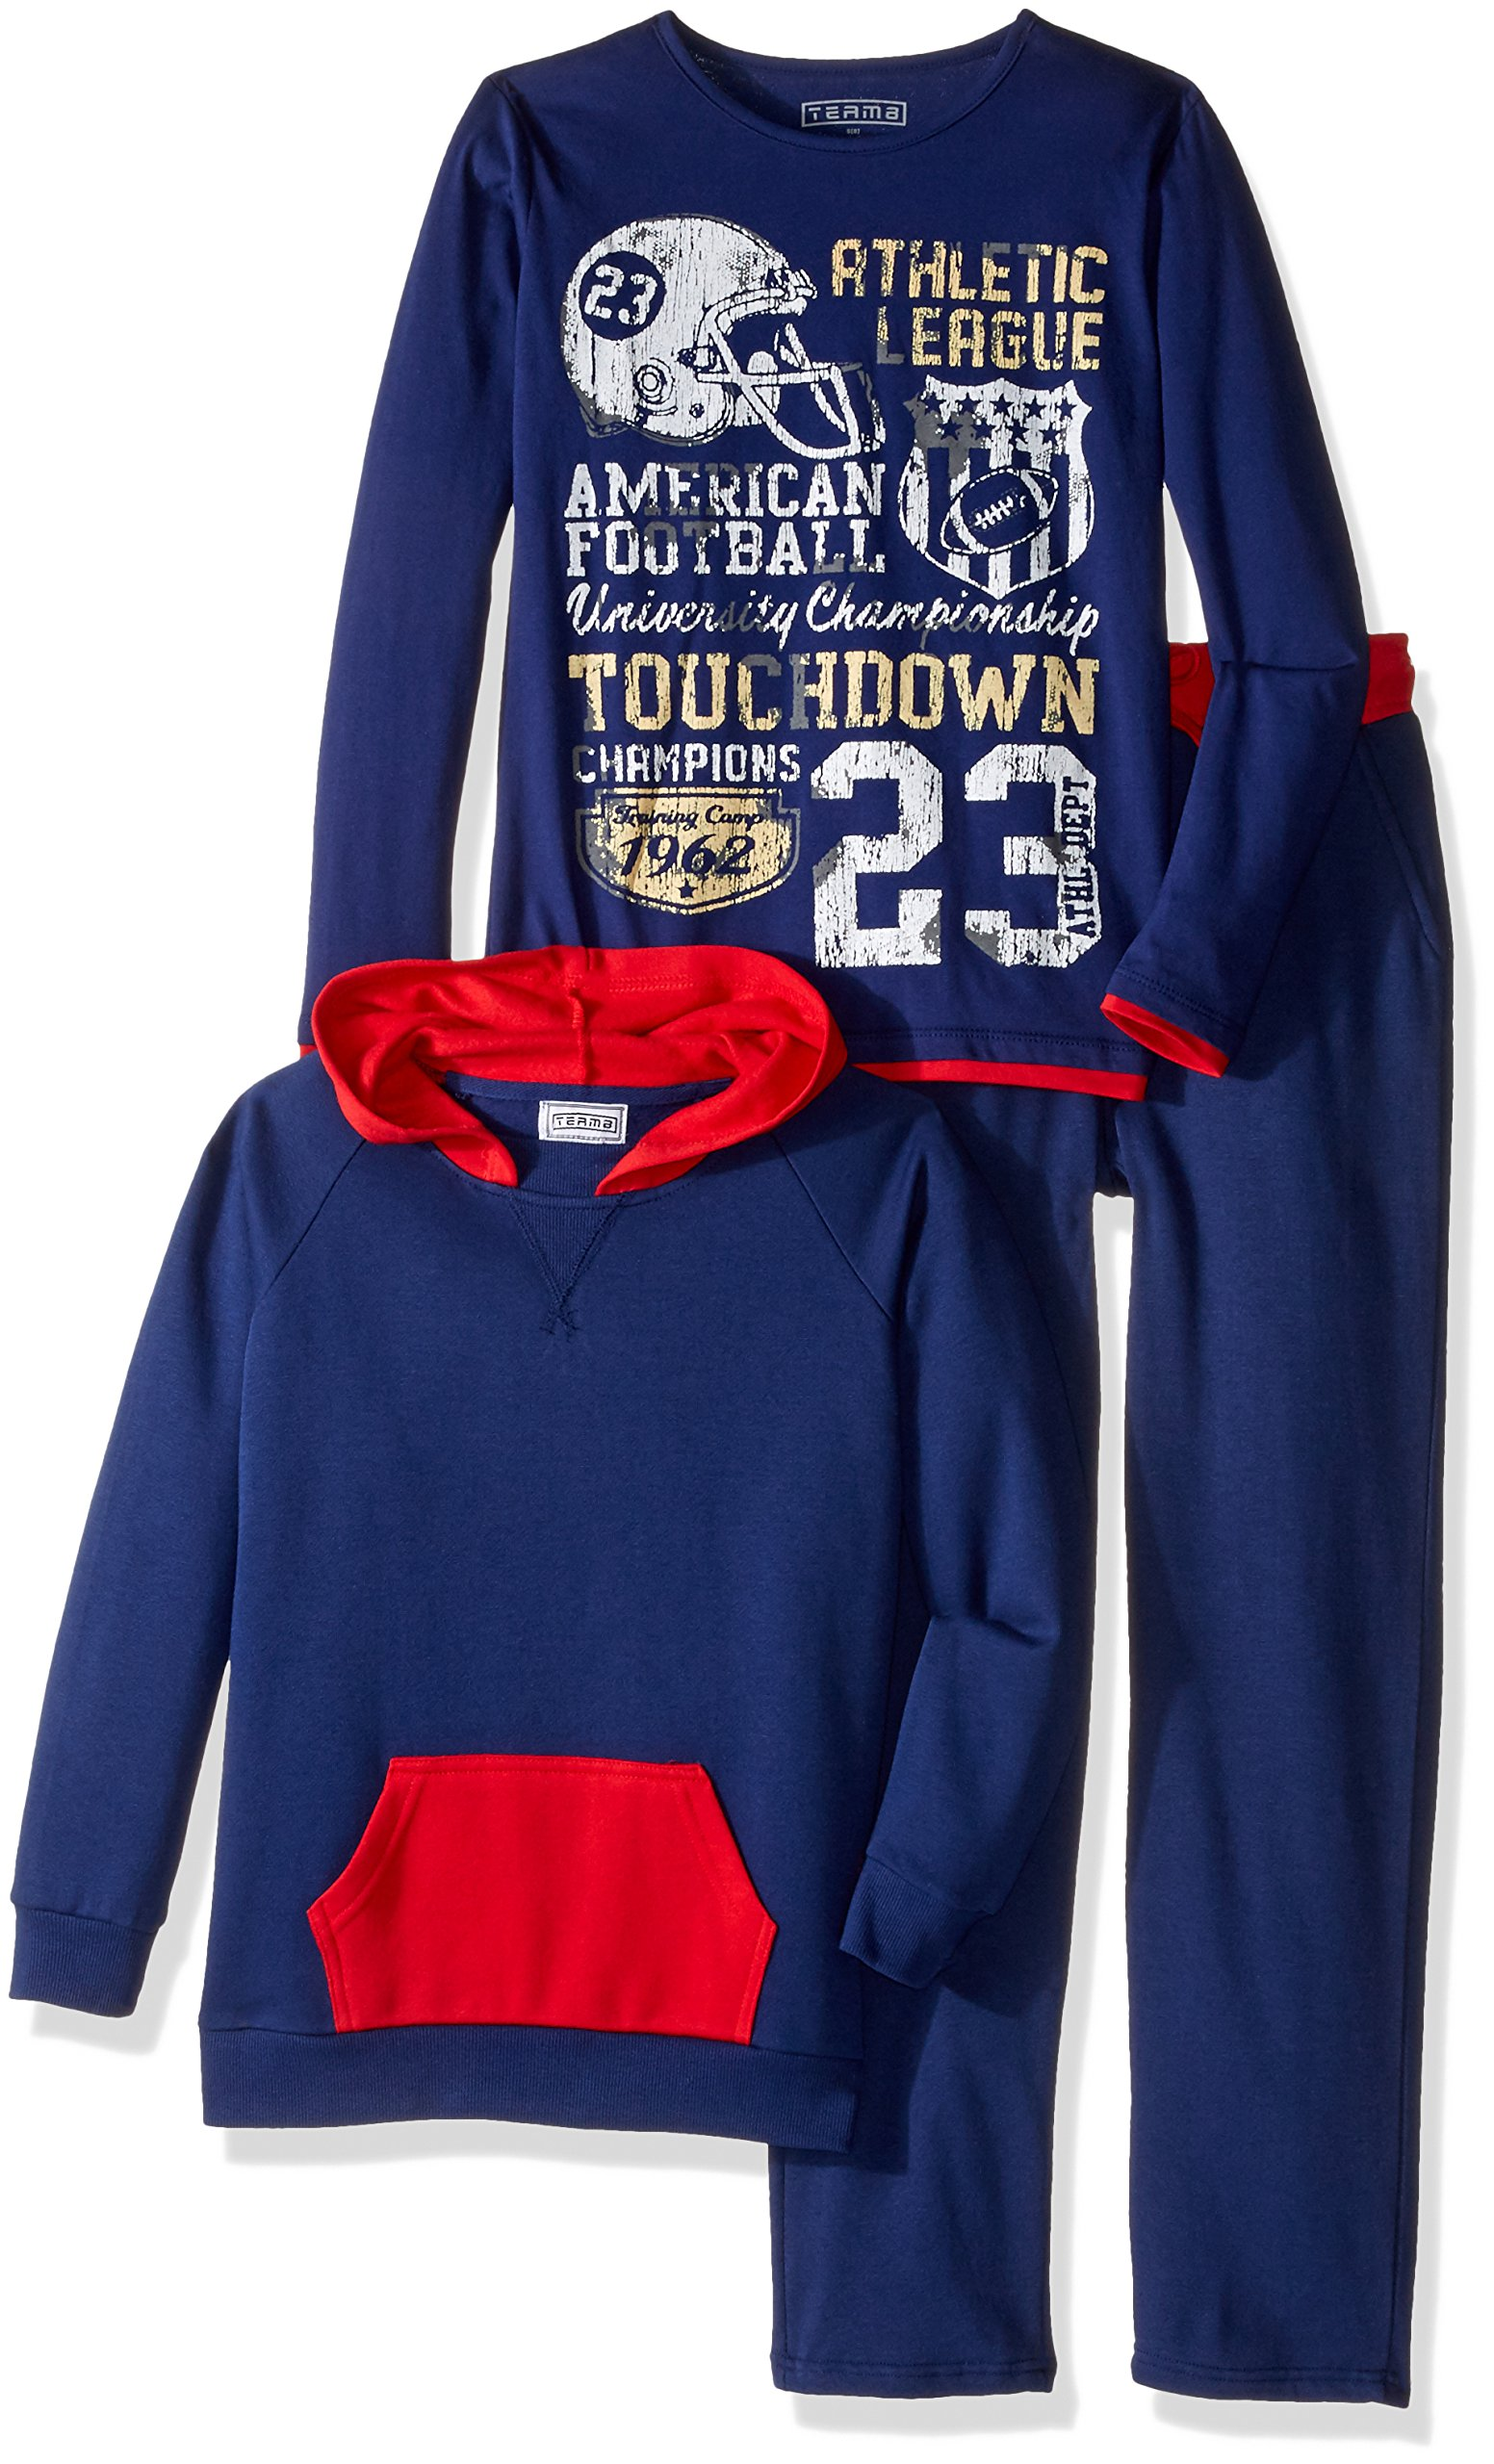 Team8 Big Boys' Fleece Color Blocked Hoodie, Blue Combo, Large/14/16 by Team8